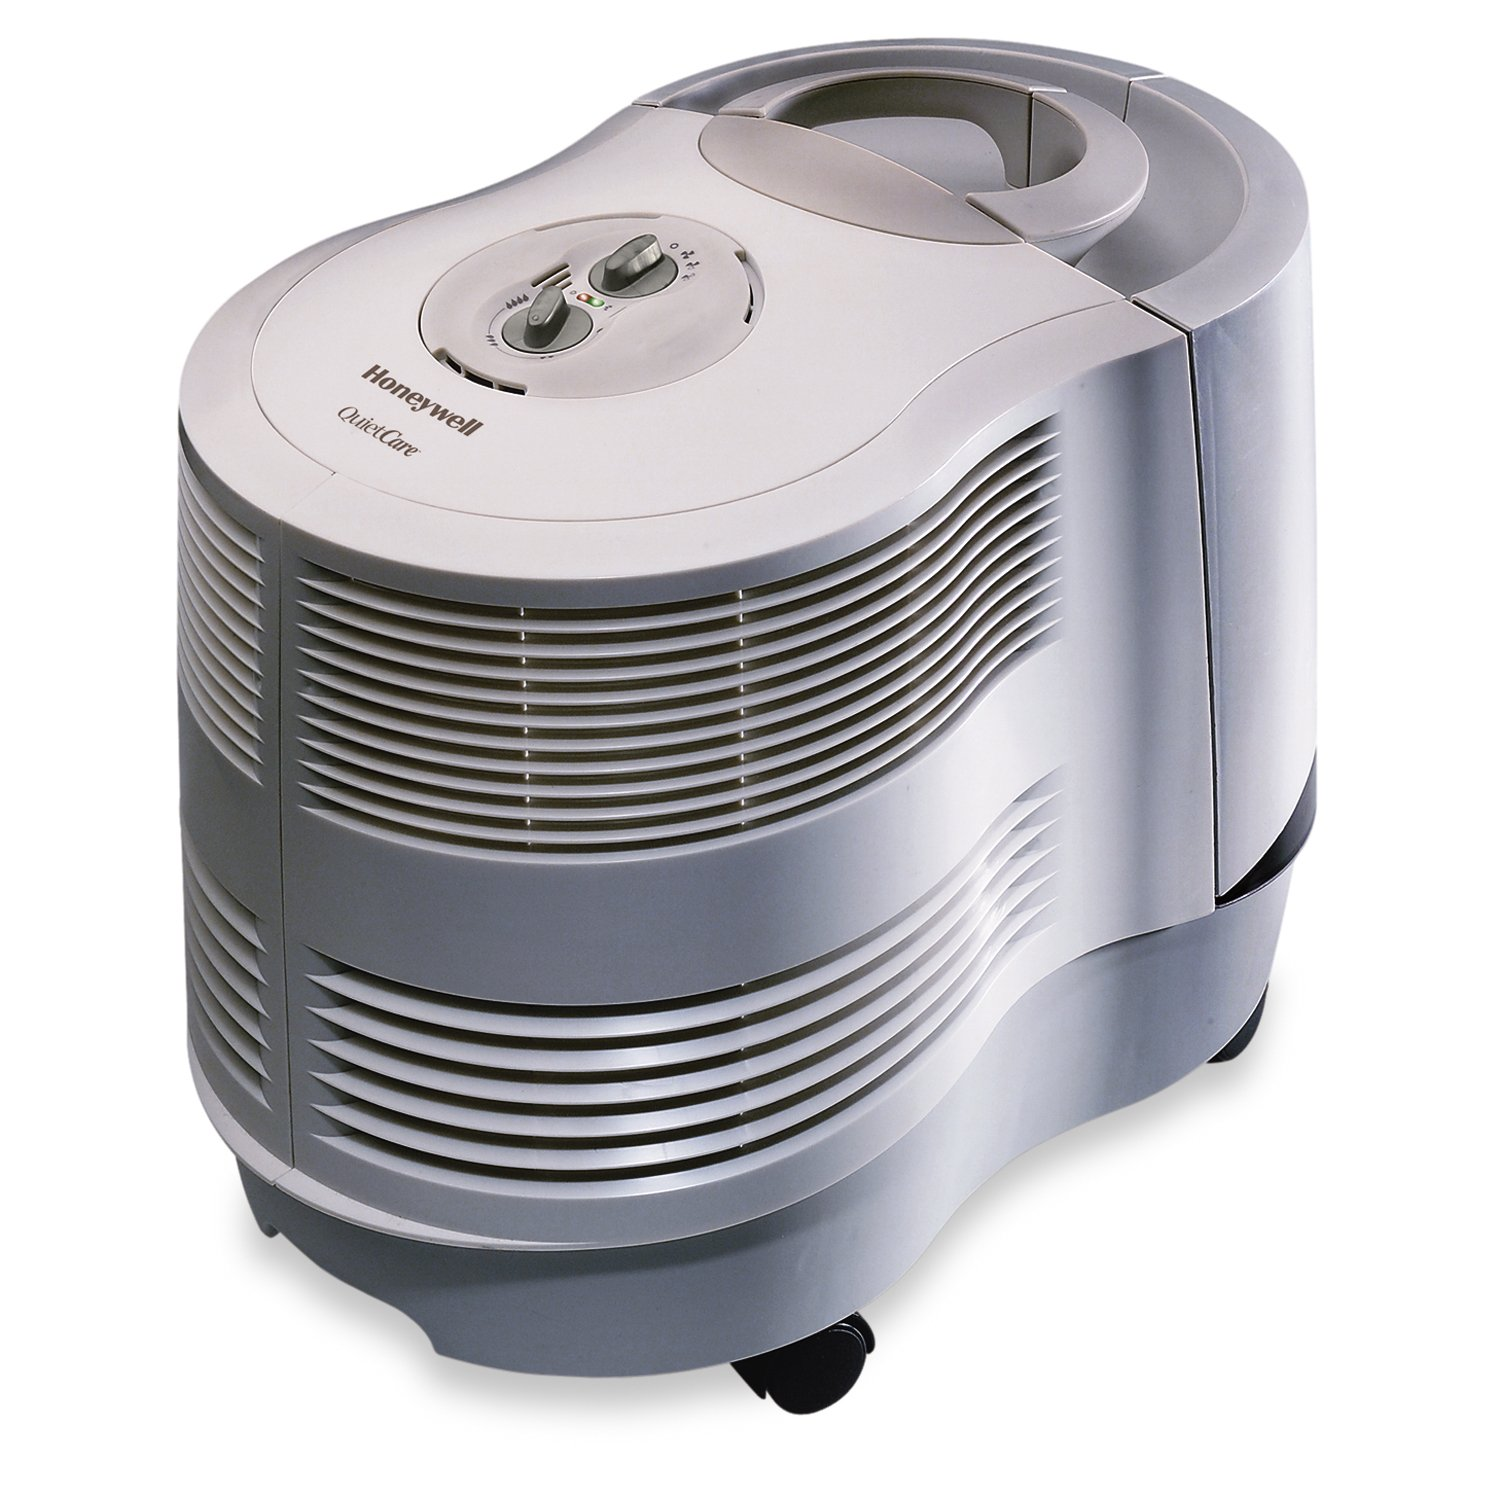 Honeywell QuietCare Humidifier HCM-6009, 9-Gallon